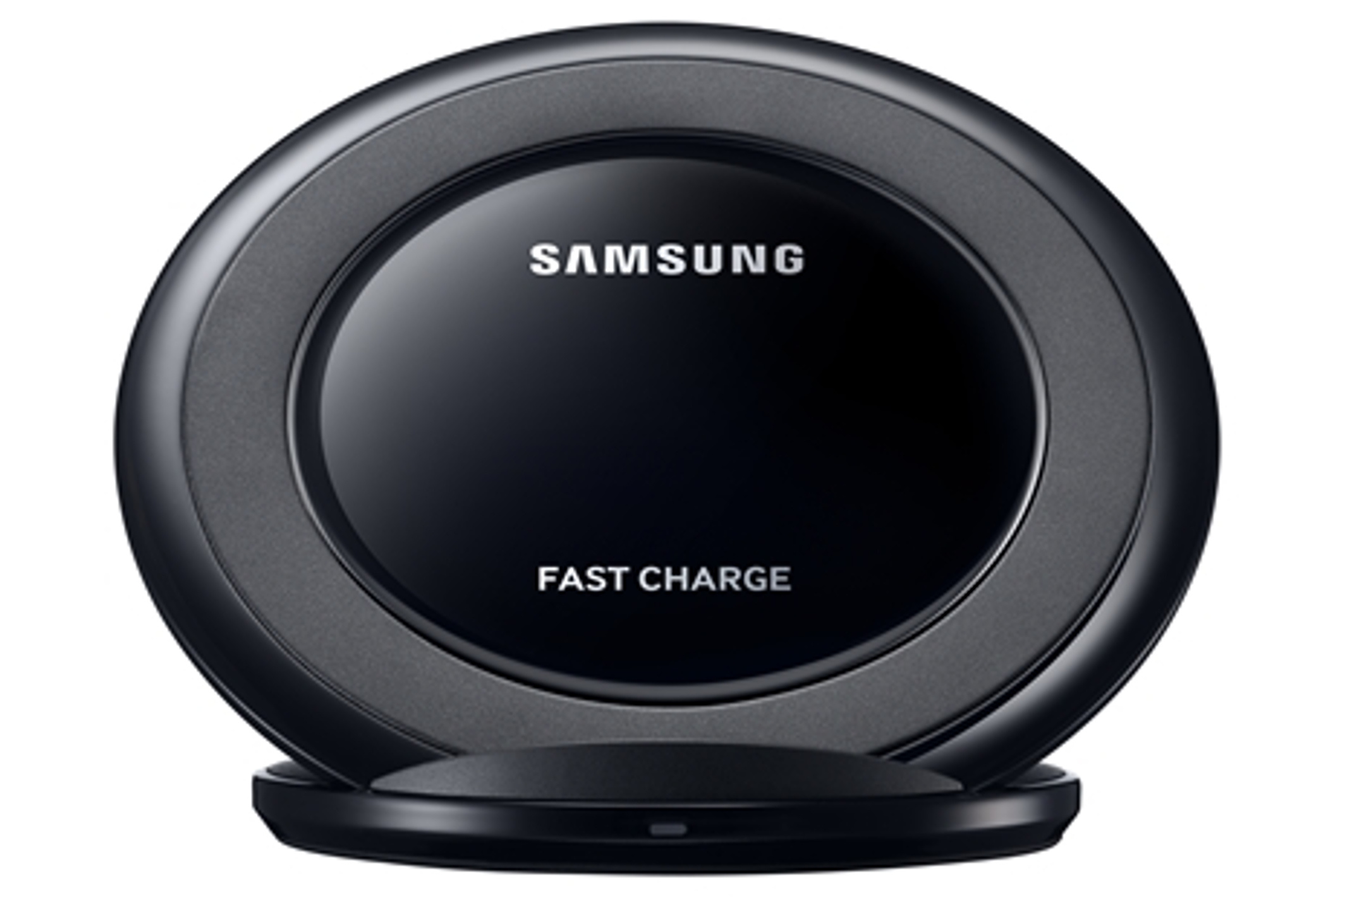 chargeur portable samsung chargeur a induction noir pour samsung galaxy s6 s6 edge s7 s7 edge. Black Bedroom Furniture Sets. Home Design Ideas